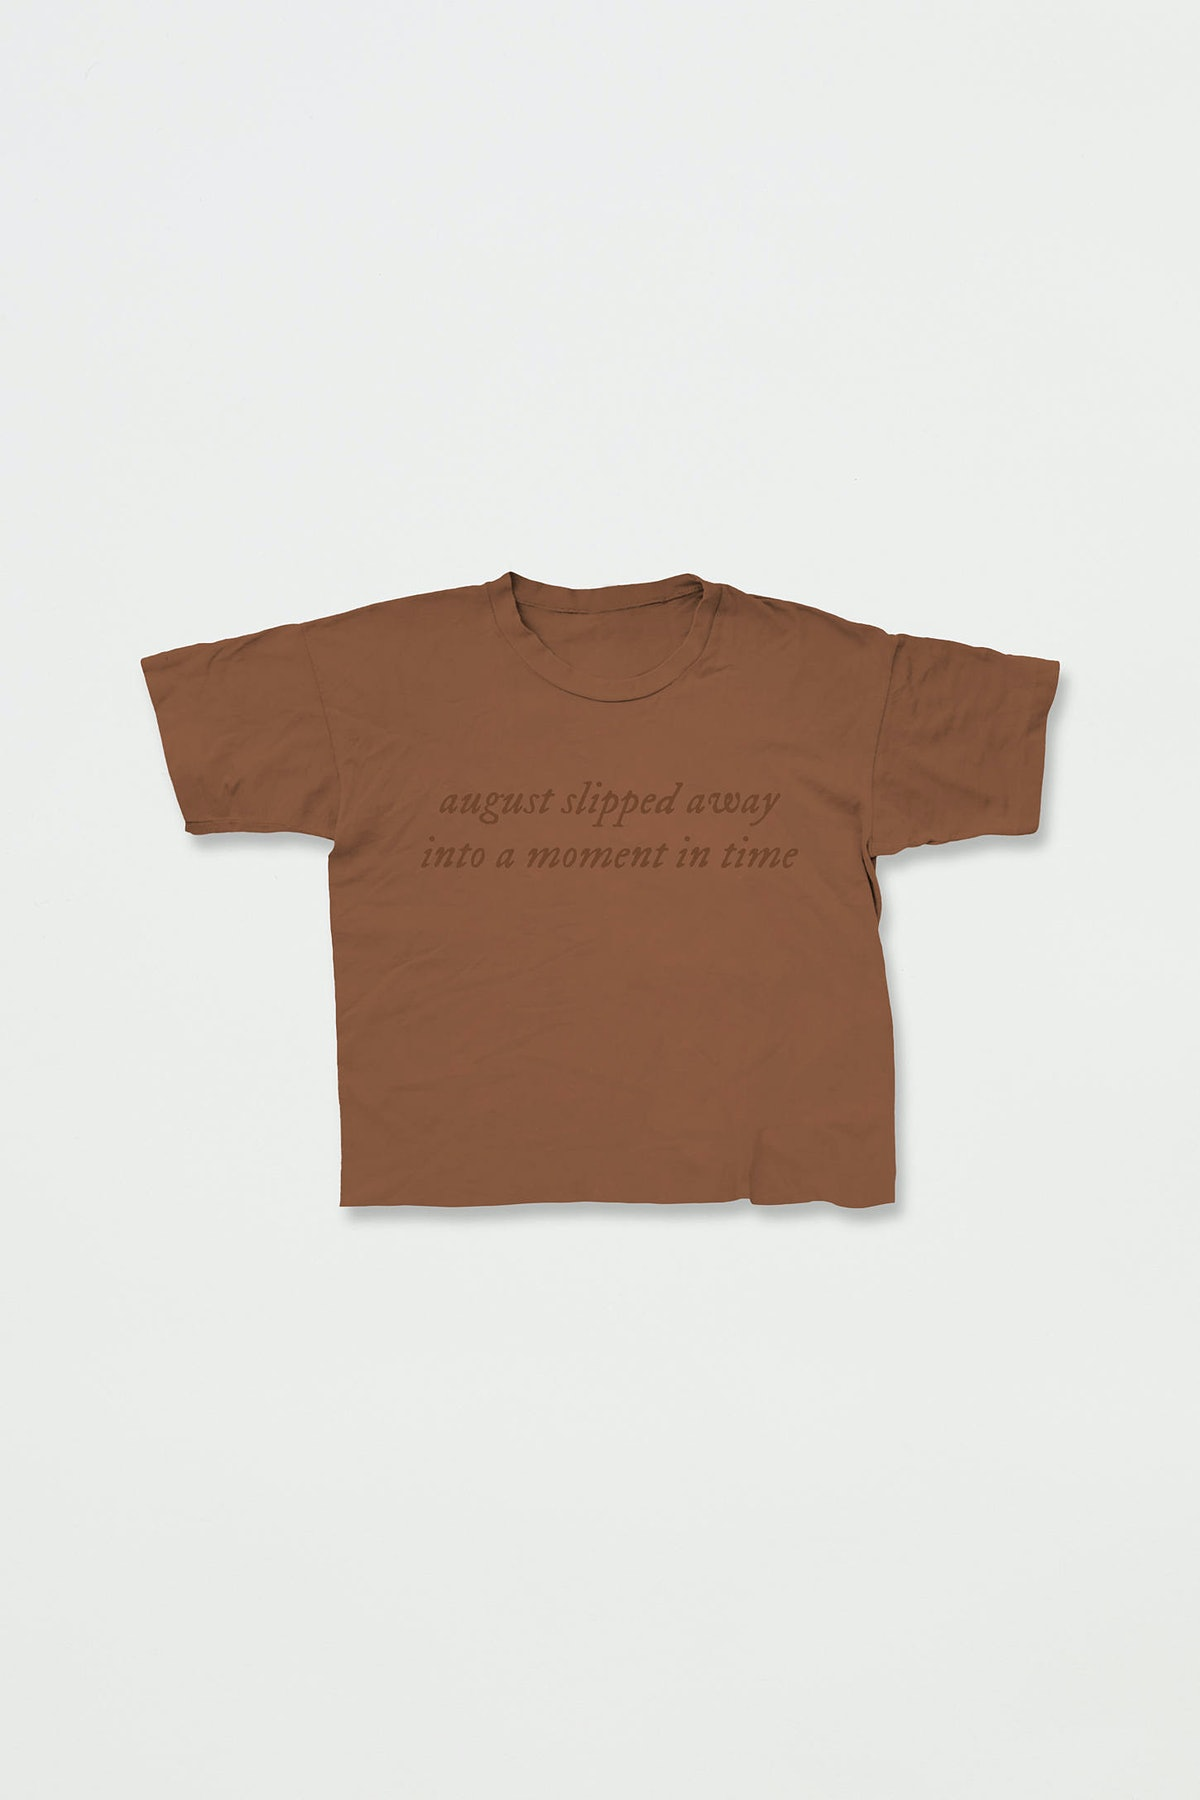 Taylor Swift Folklore Anniversary Collection UO Exclusive Cropped Tee